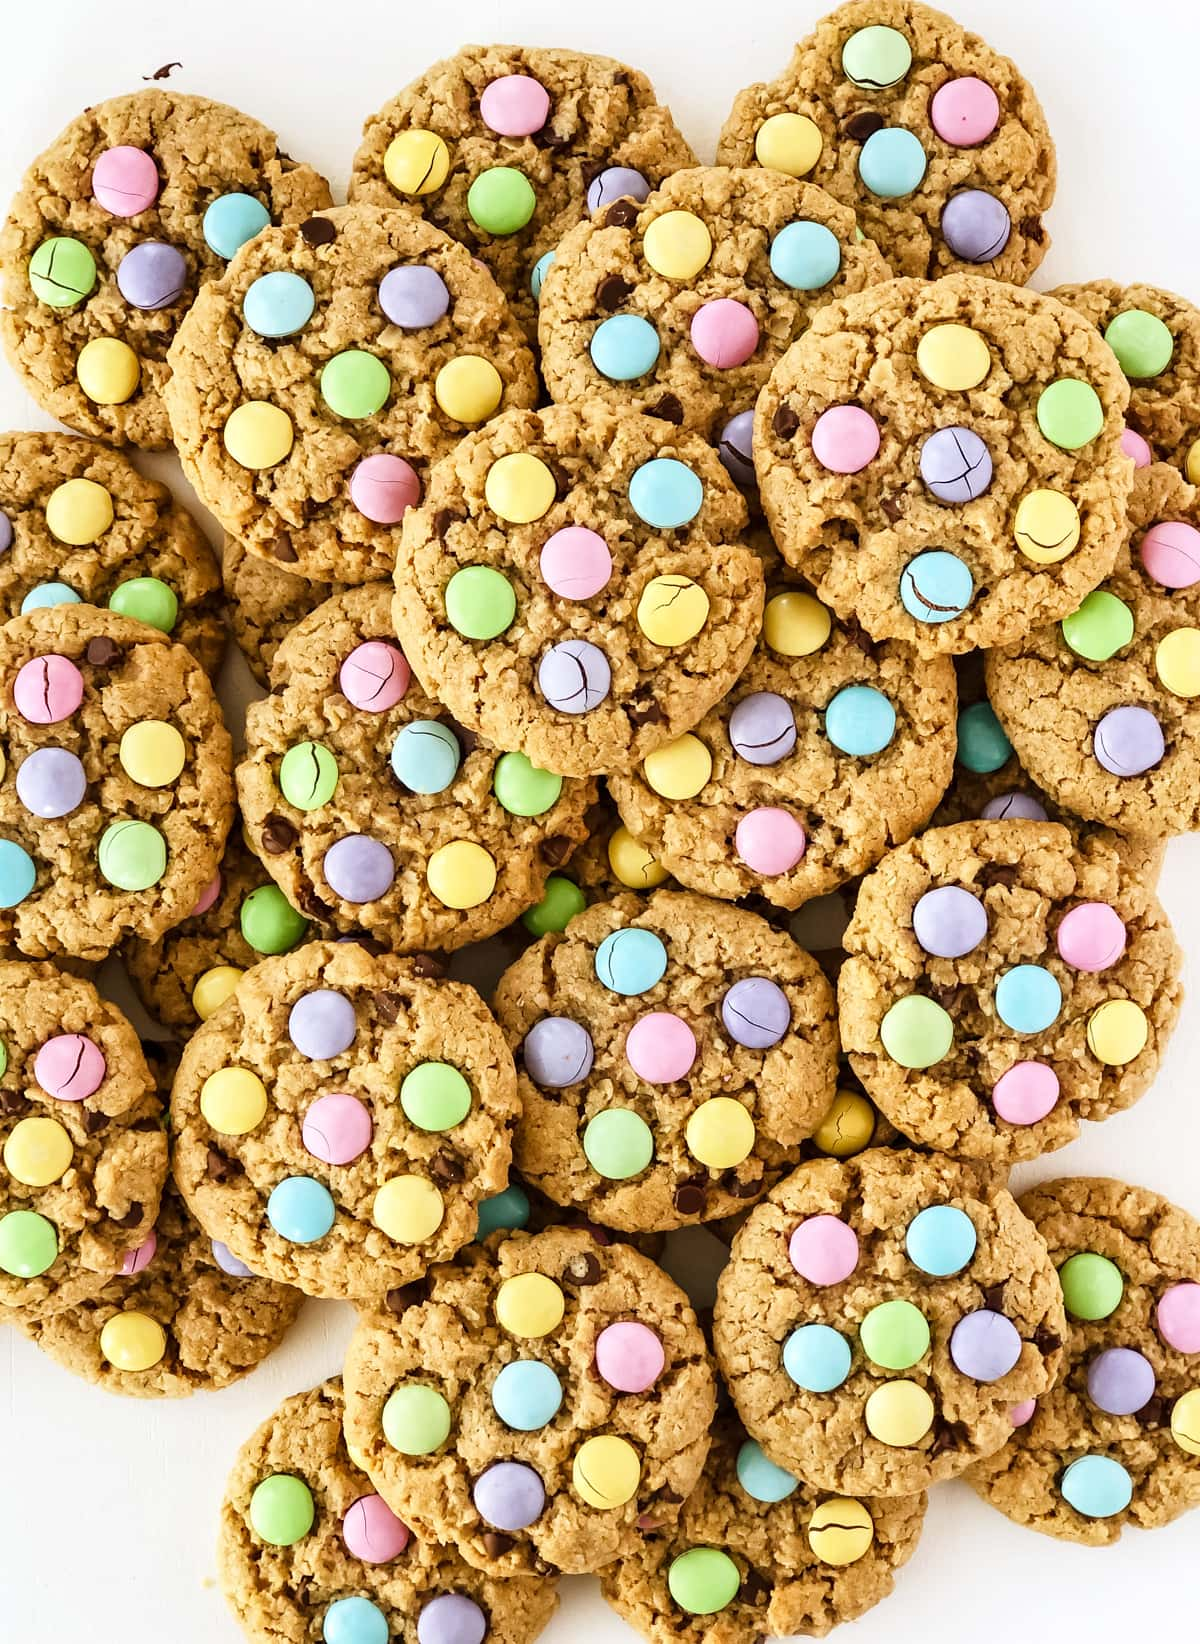 Peanut Butter Oatmeal Easter Cookies